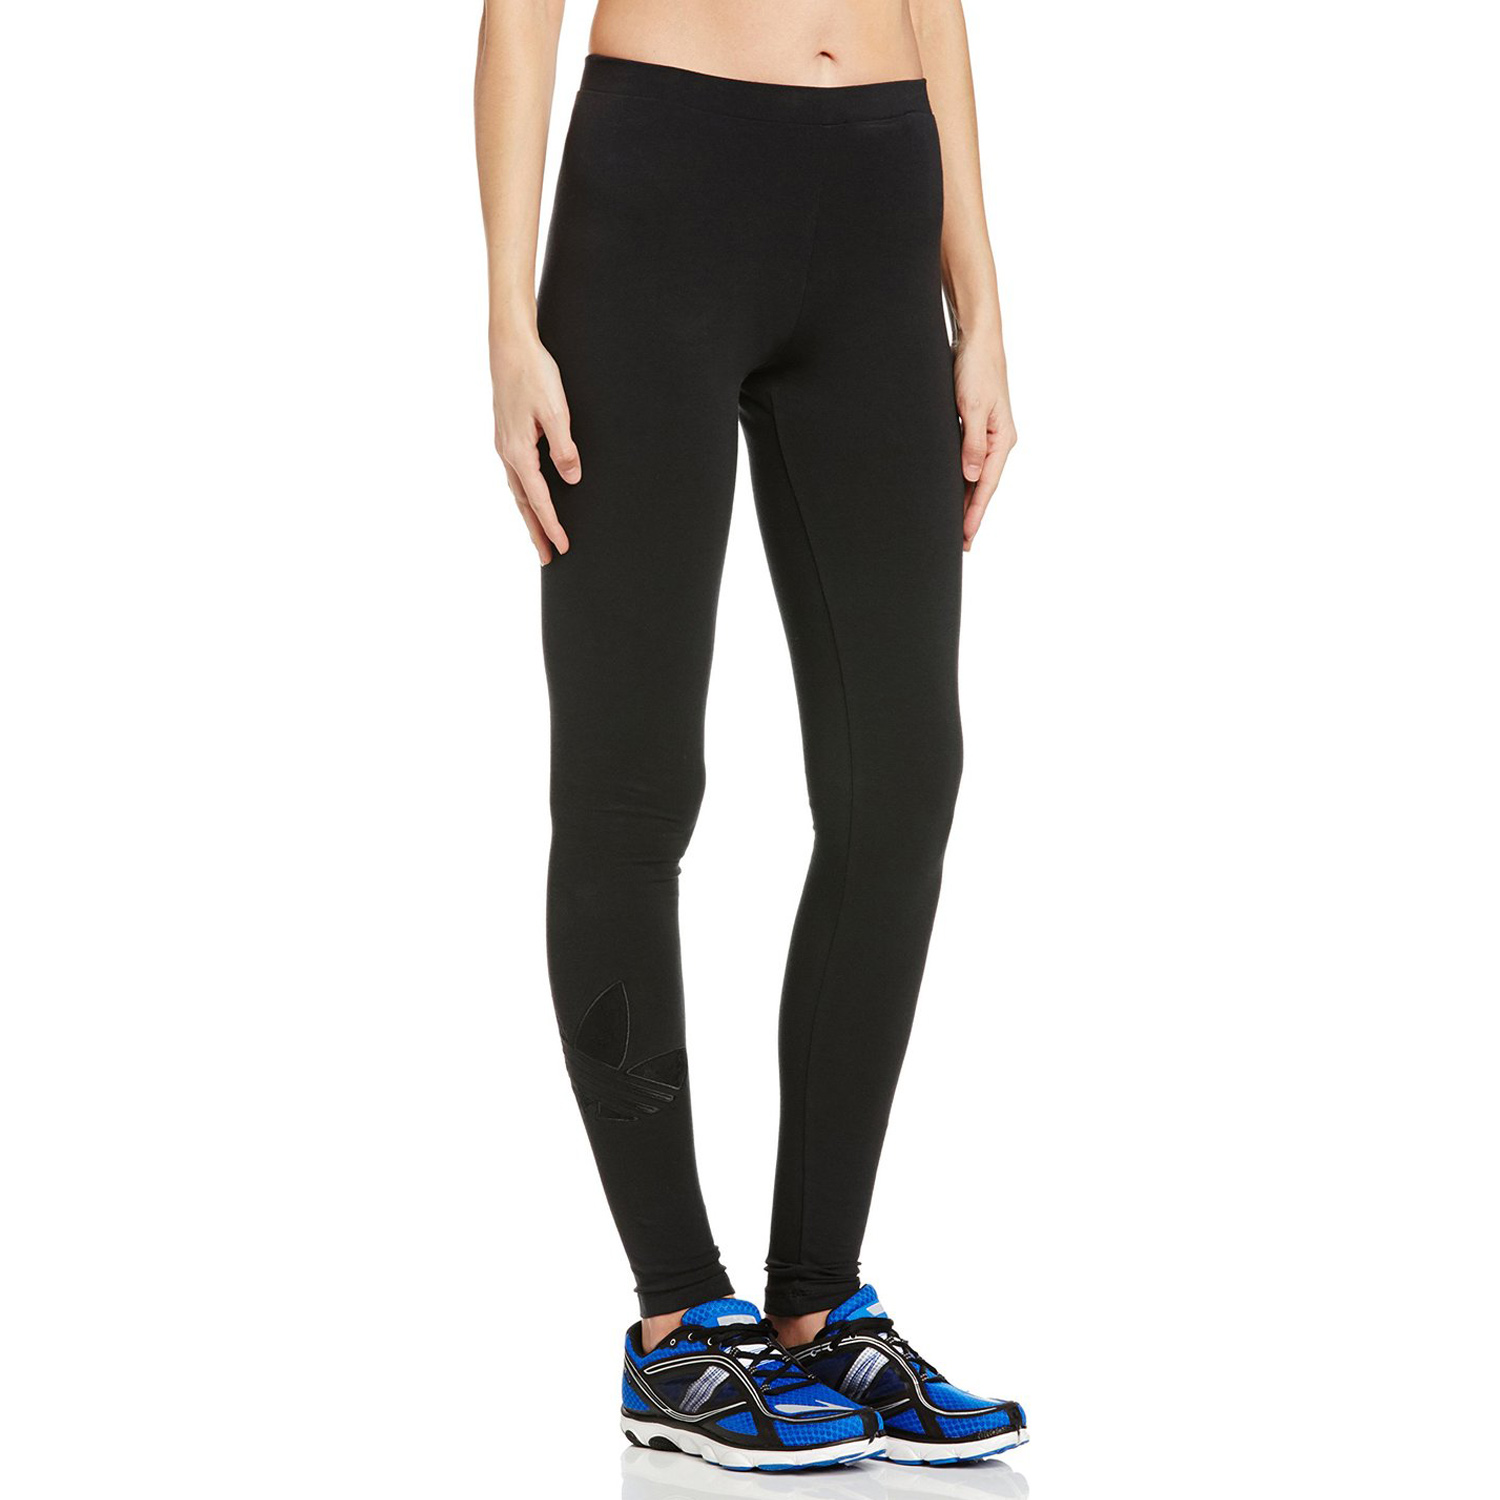 Creative With A Slim Fit Through The Hips And Upper Legs, These Training Pants Excel In Workout Versatility The Womens Pants Pull Sweat Away From Skin With Comfortable Climalite Fabric They Also Have A Ribbed Waist And Long Cuffs For A Bodyhugging